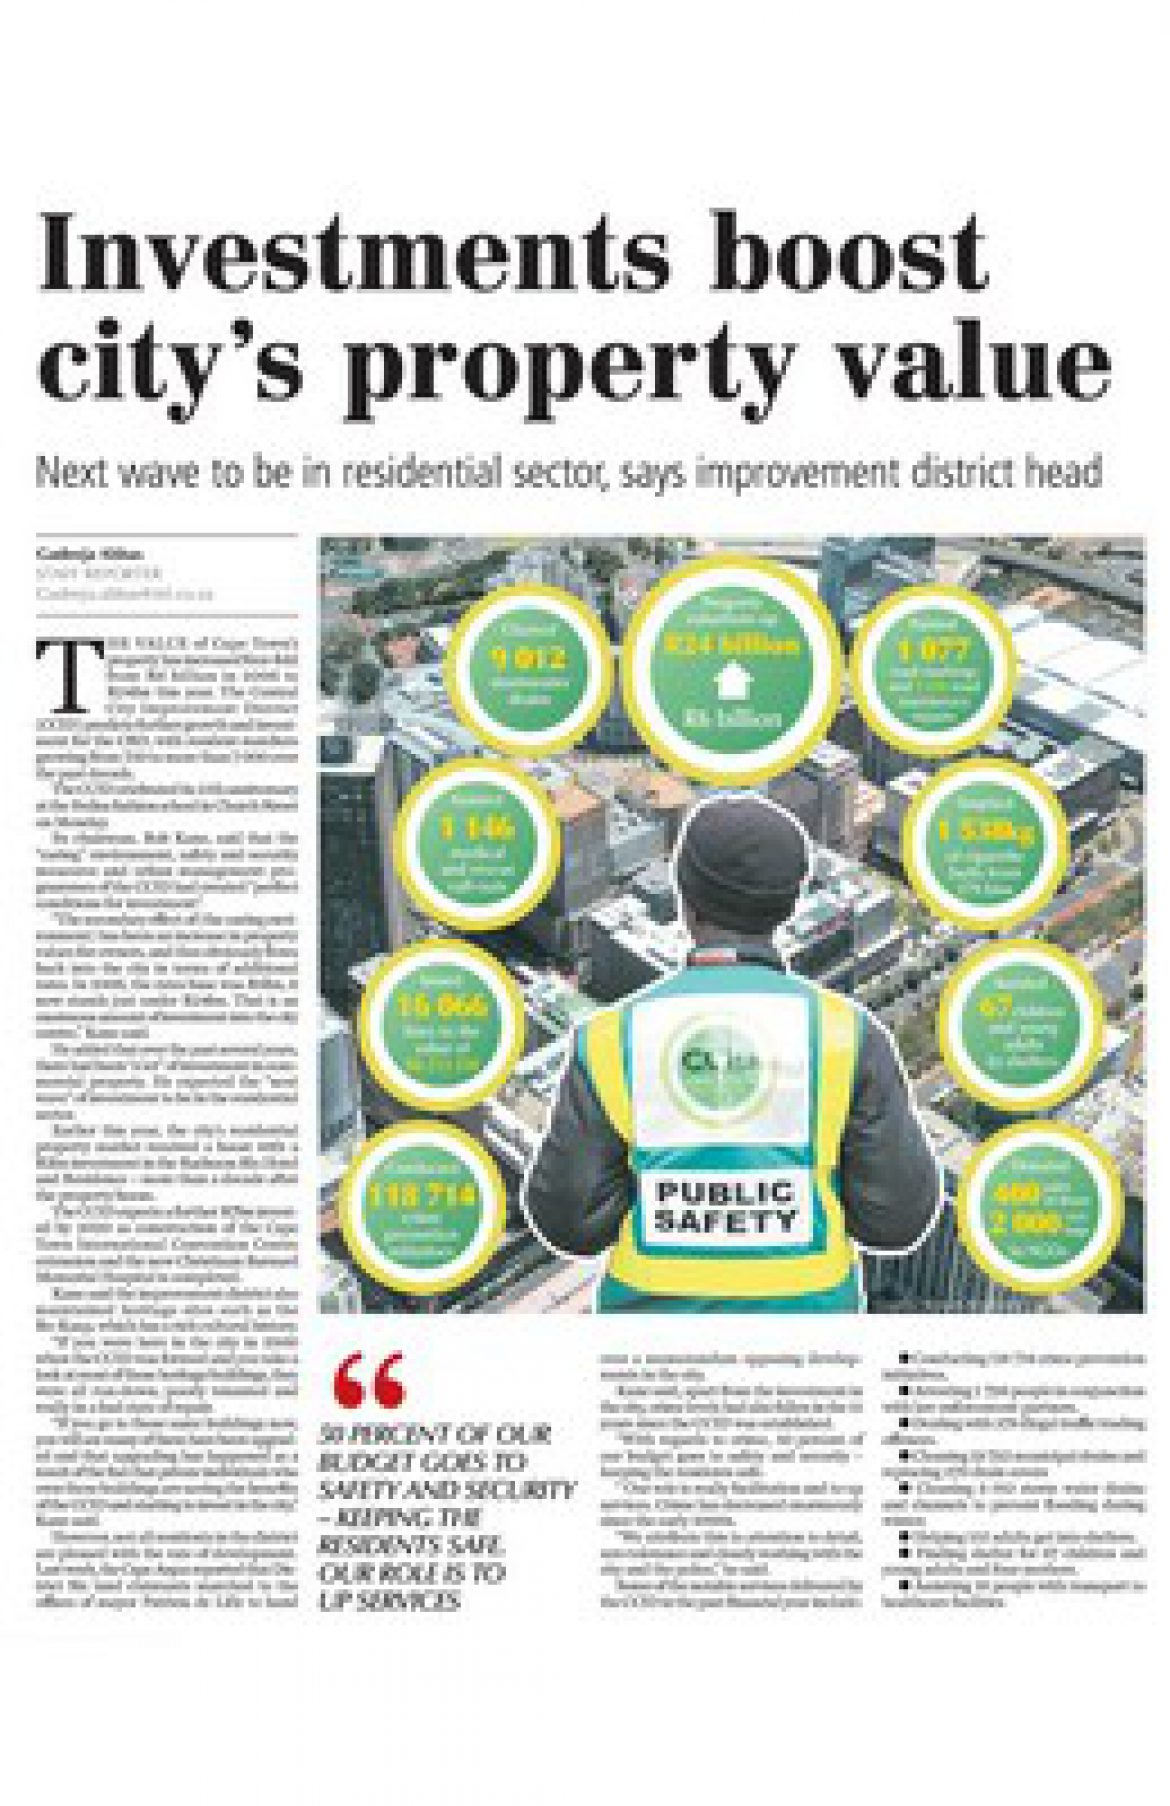 Investments boost city's property value